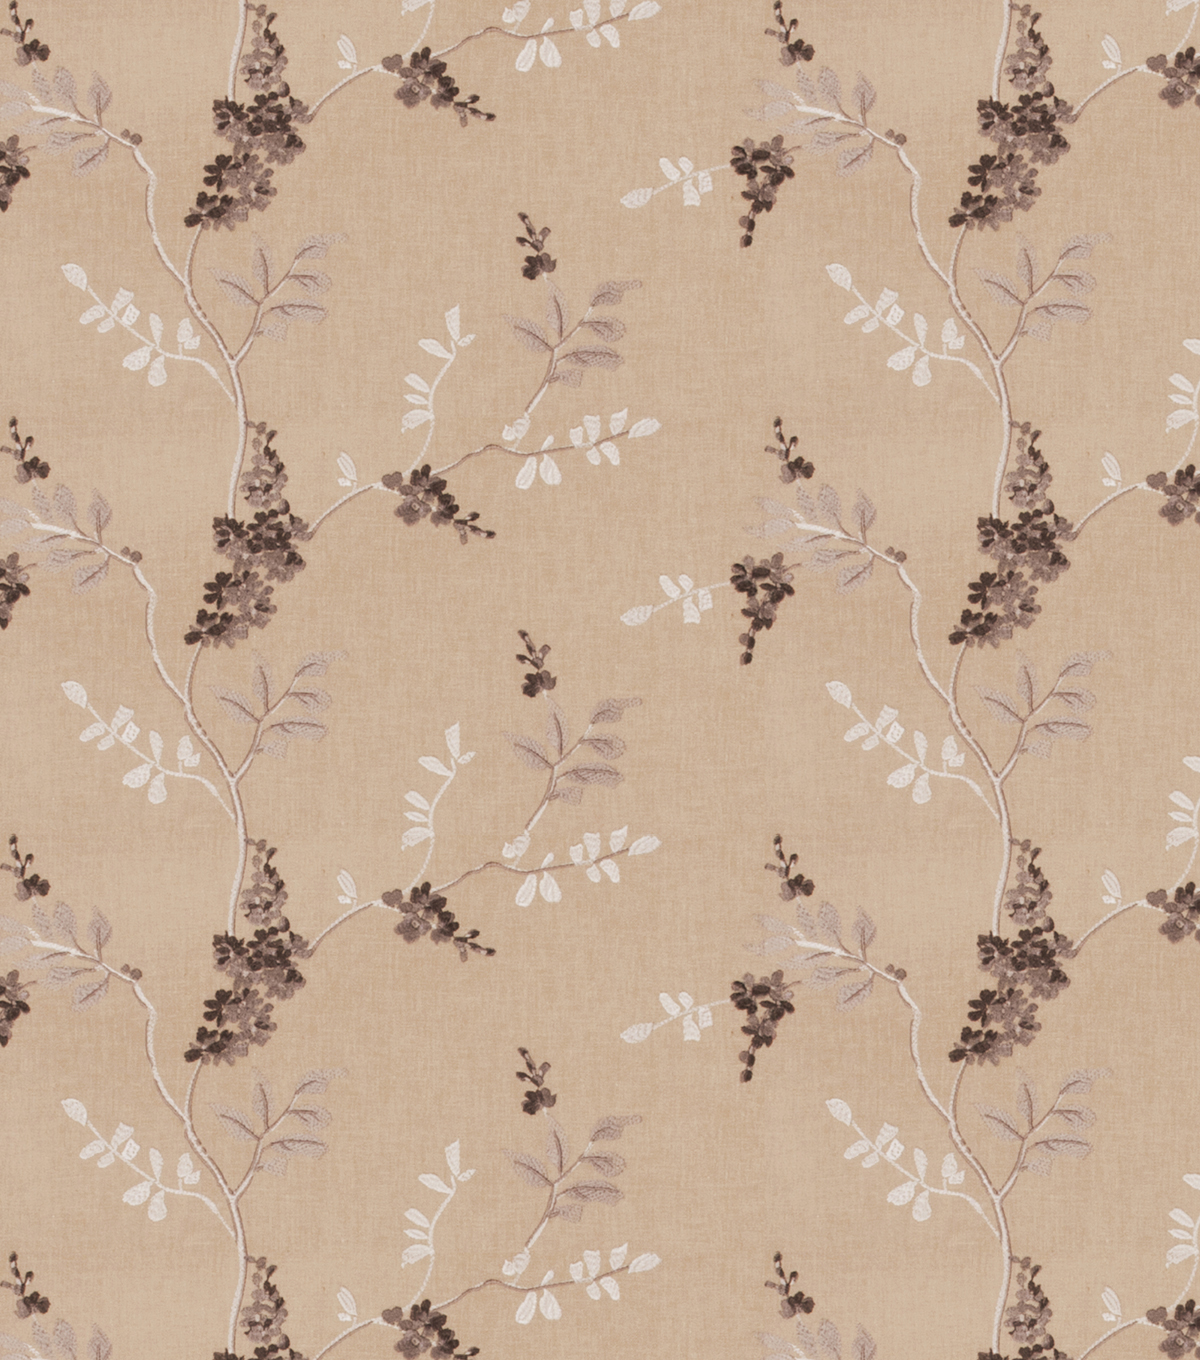 Eaton Square Lightweight Decor Fabric 51\u0022-Rosehips/Grey